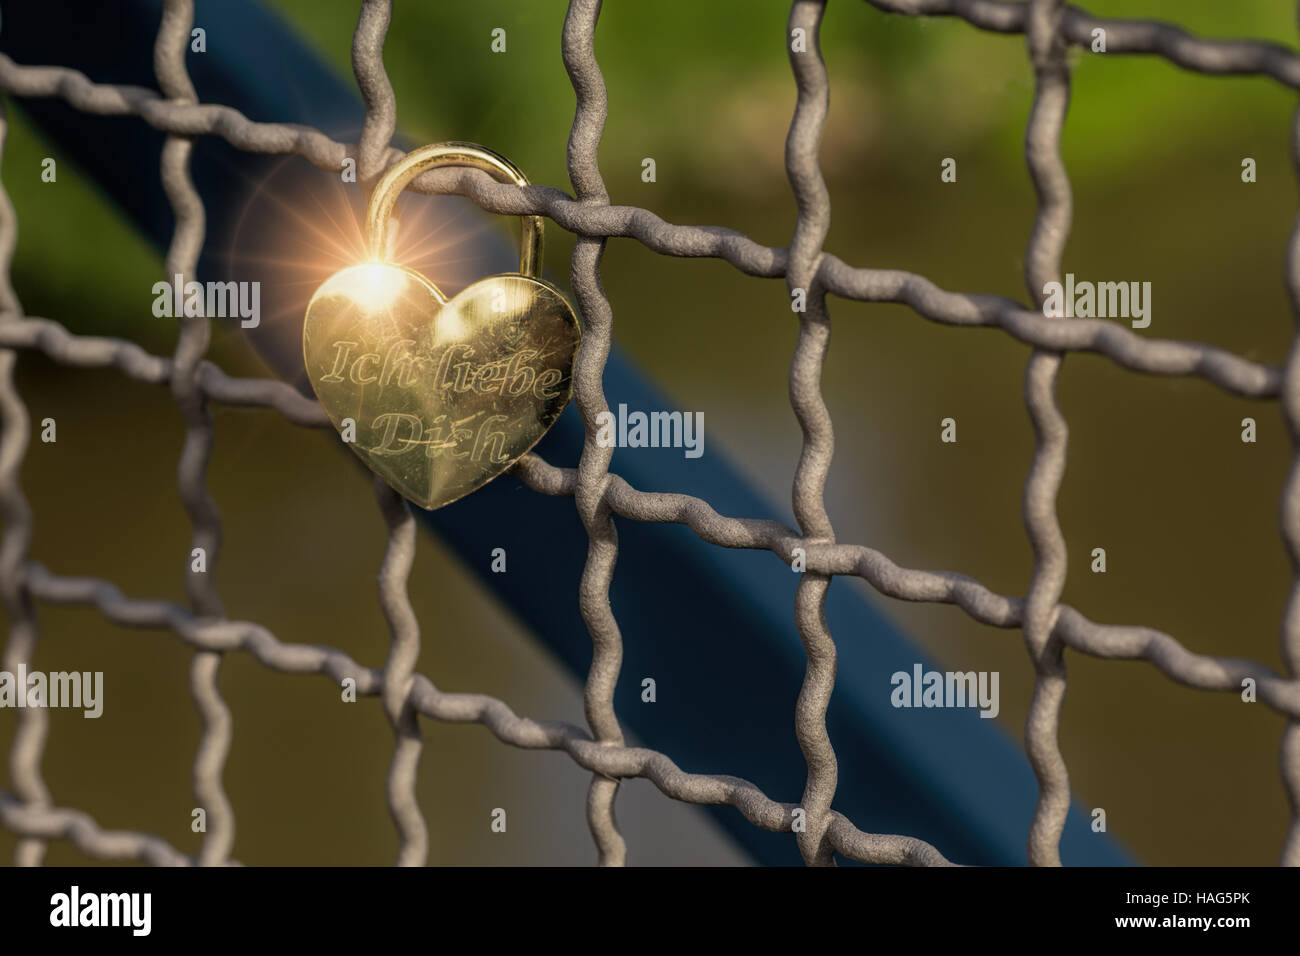 Heart shaped love padlock on a bridge. The padlock contains 'Ich liebe dich'.Valentine's day background. - Stock Image